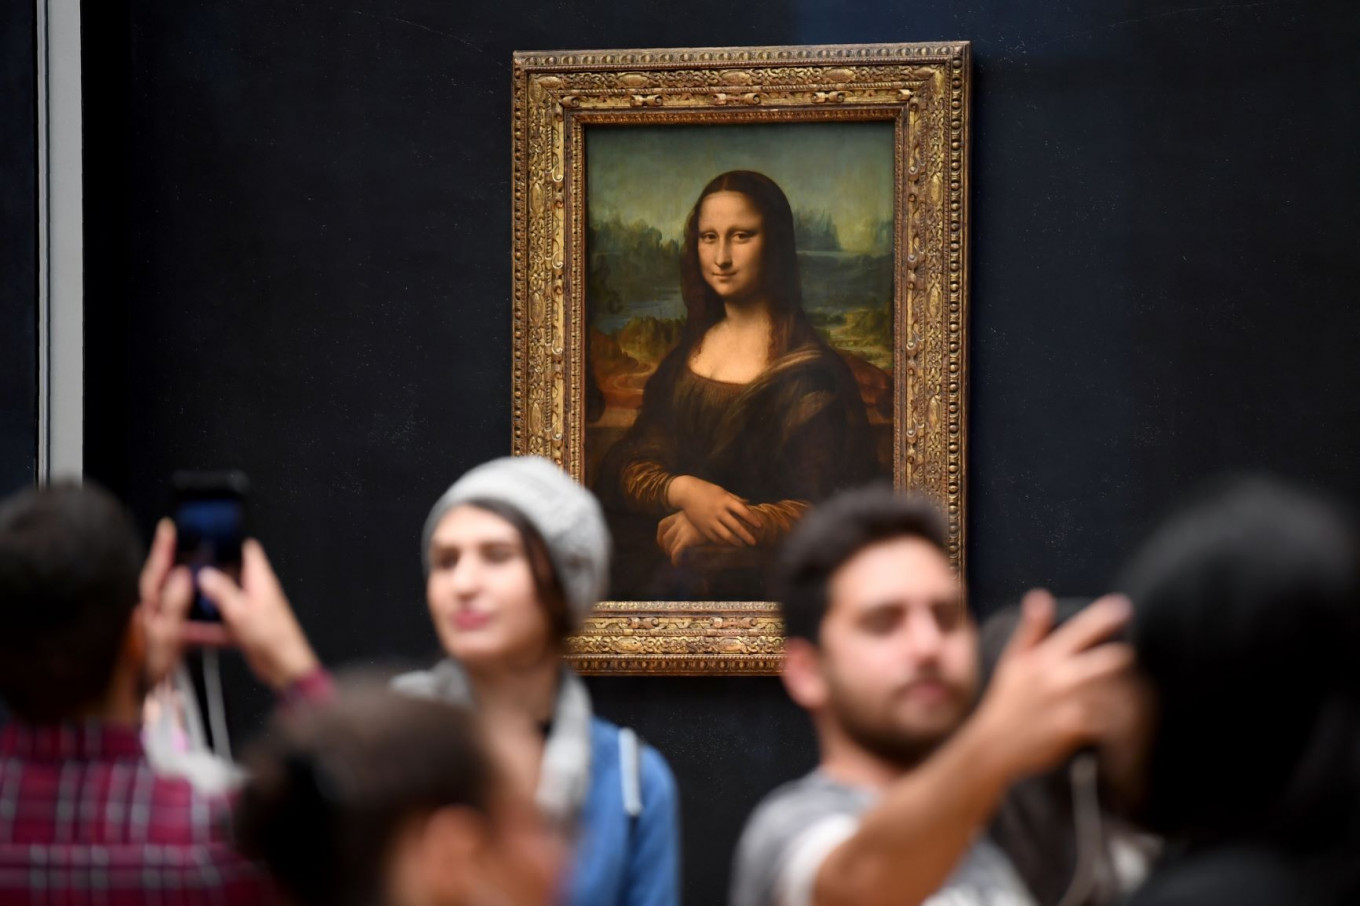 Art conservation: Restoring masterpieces requires a league of its own